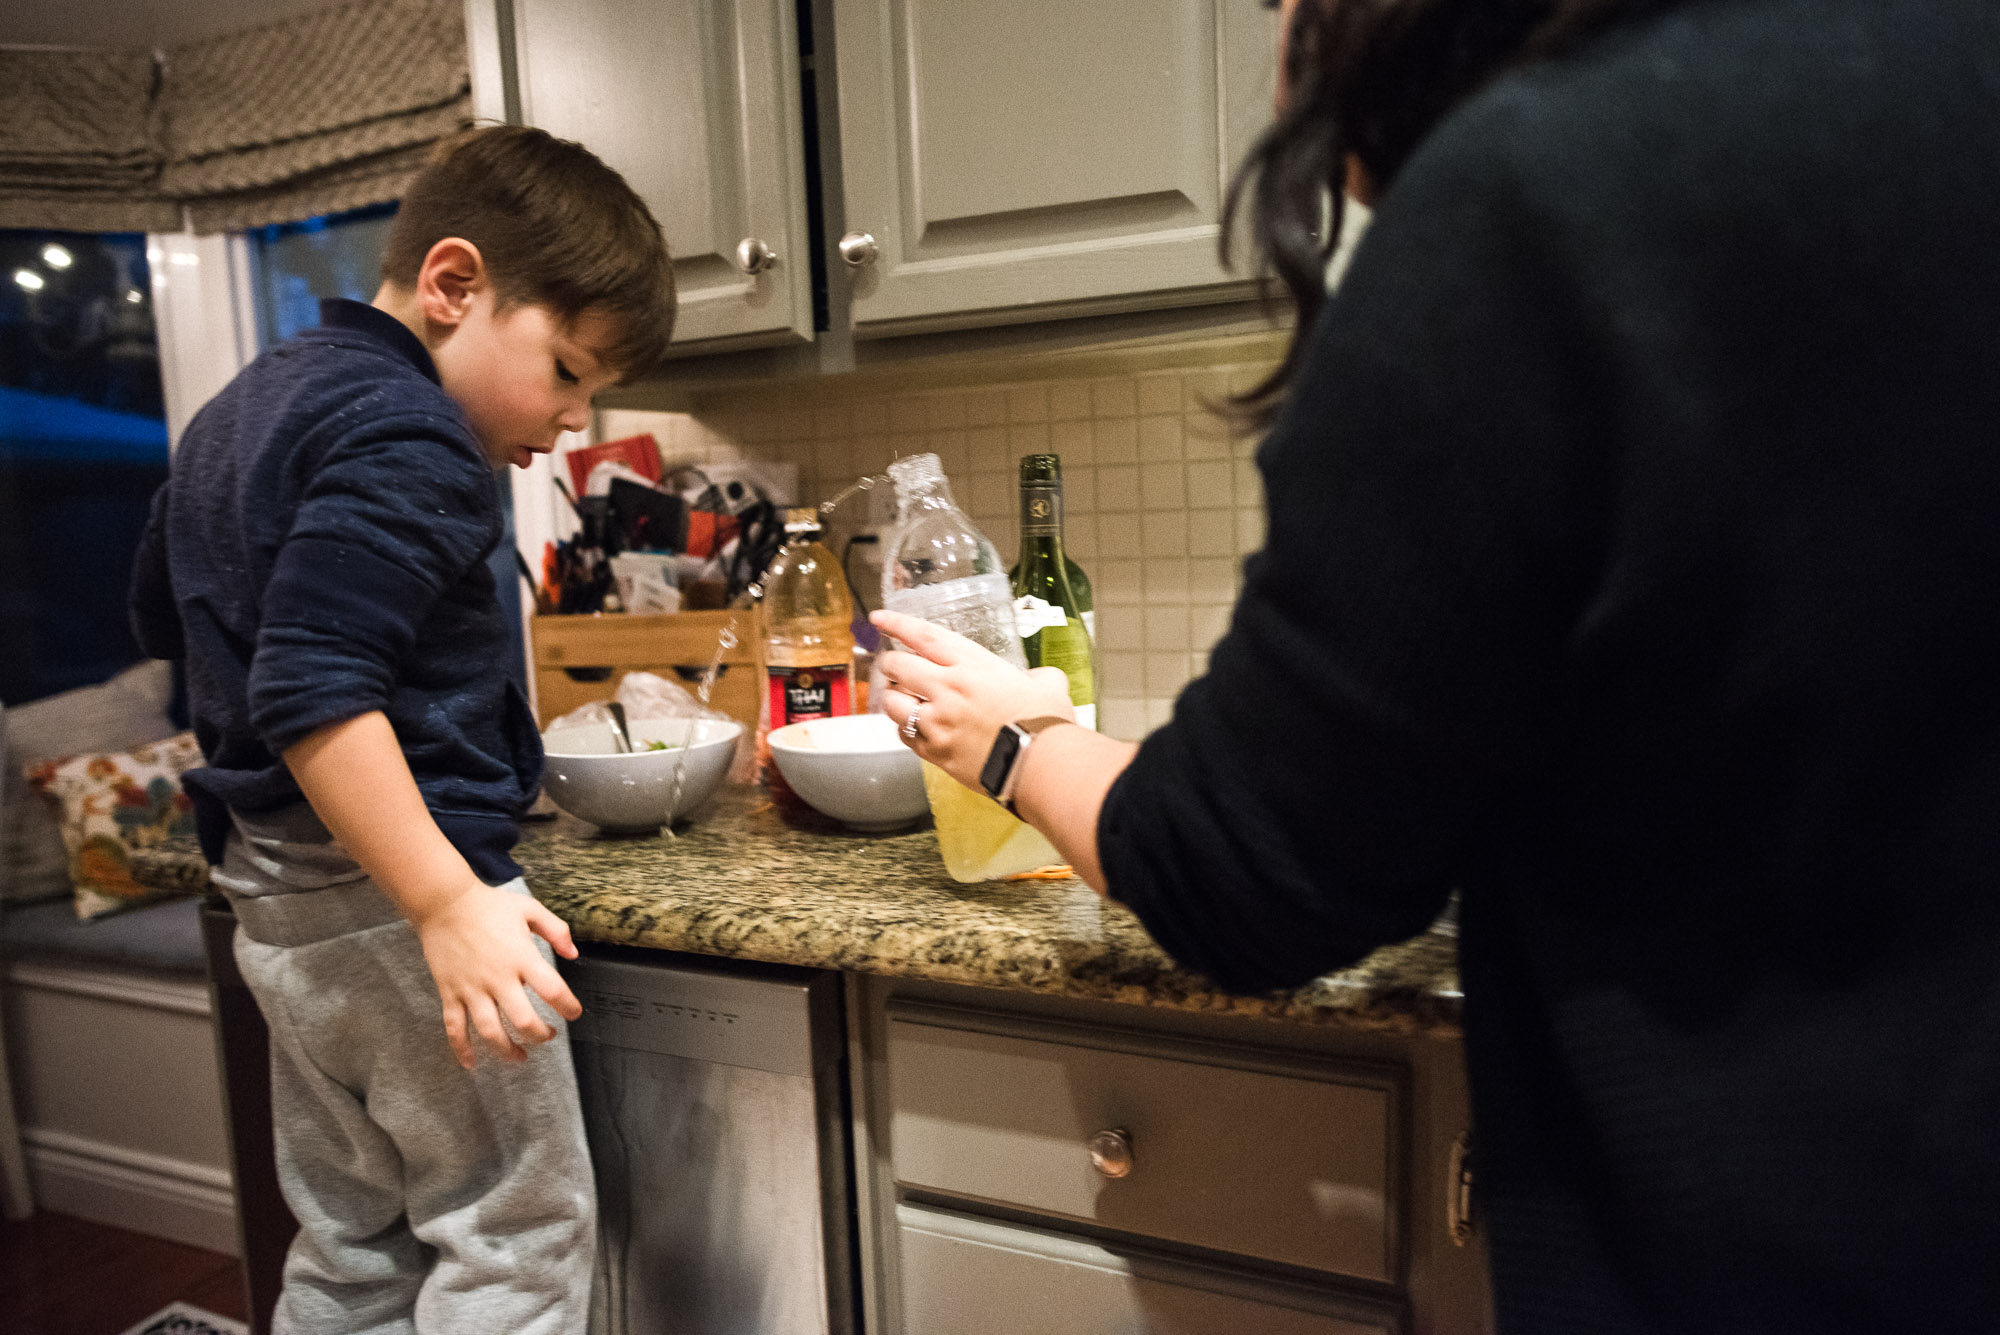 boy looks as mom catches spilling bottle in kitchen